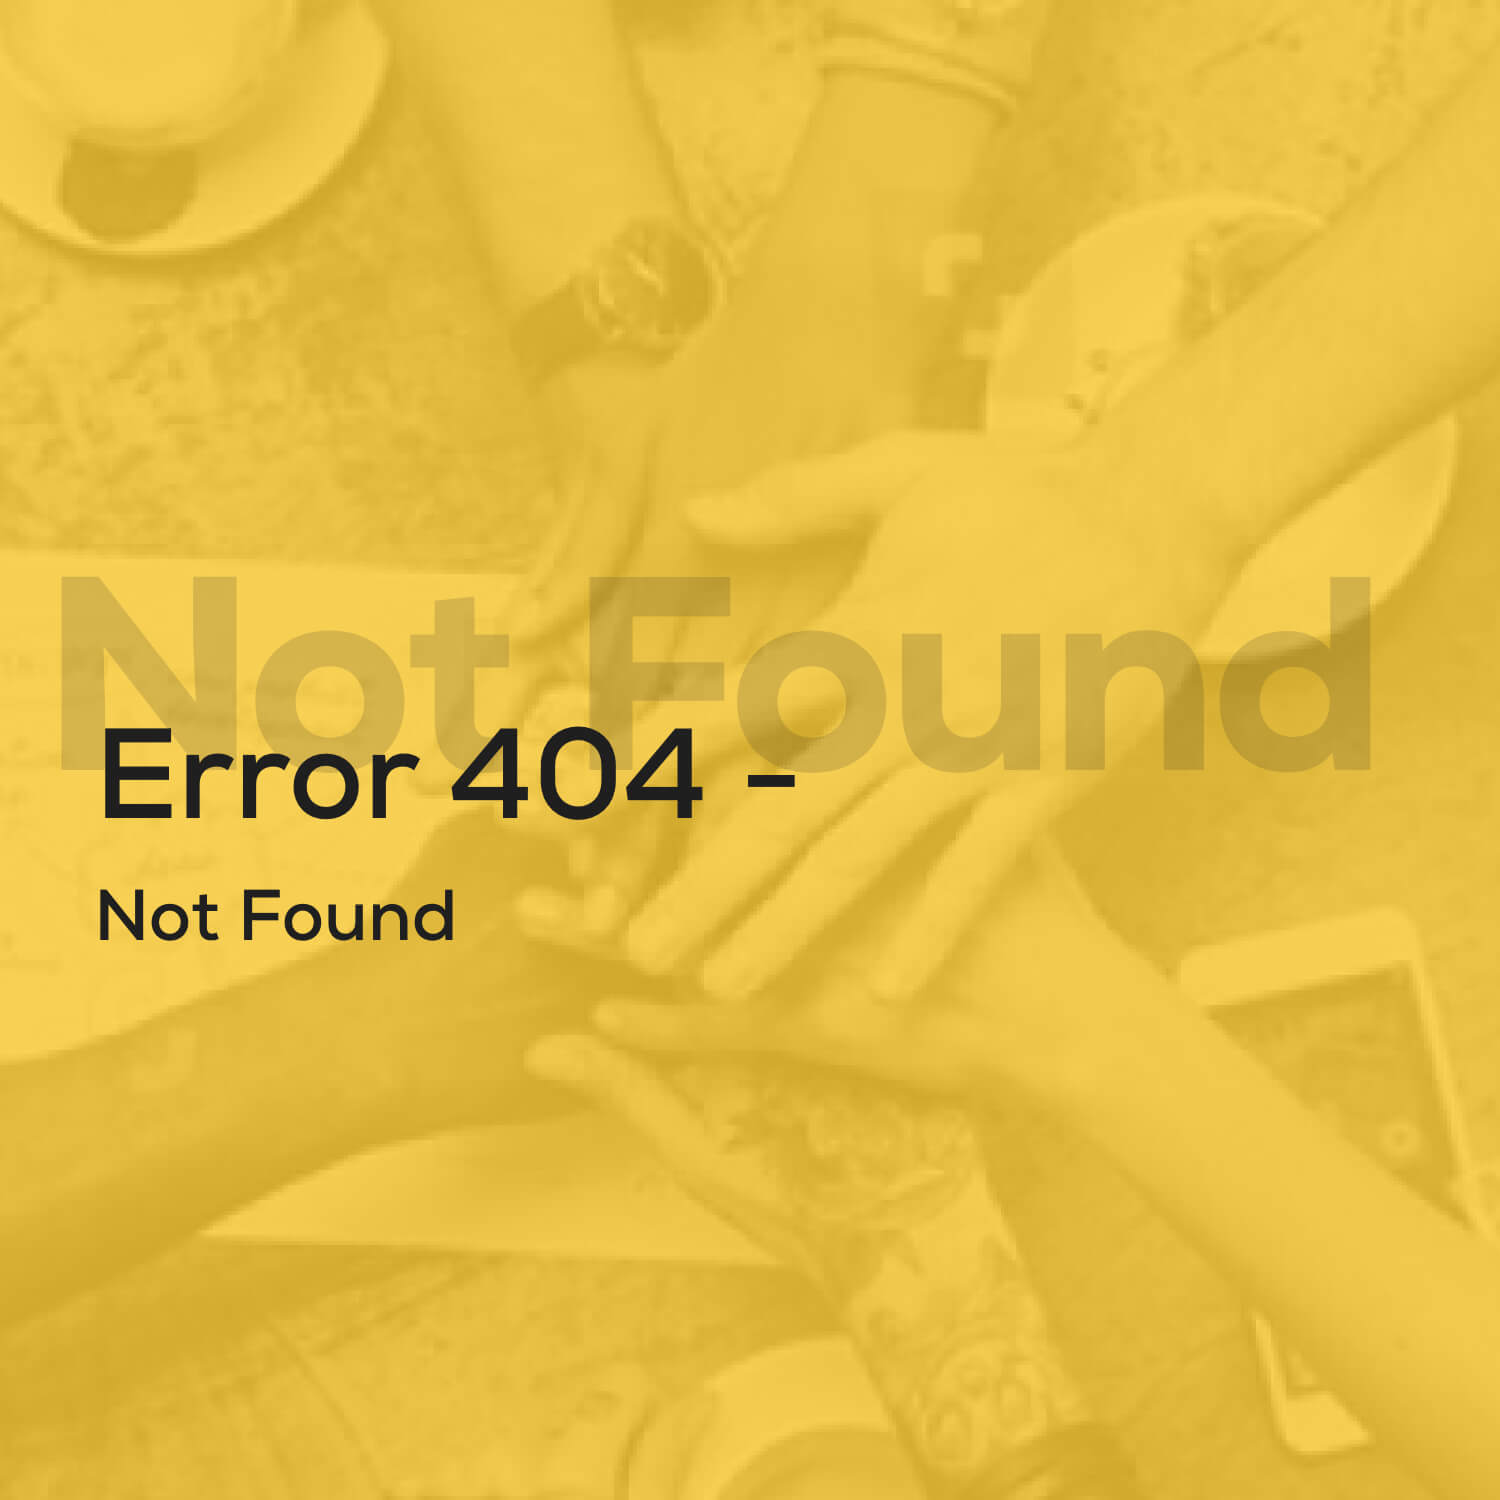 Error 404 - Not Found